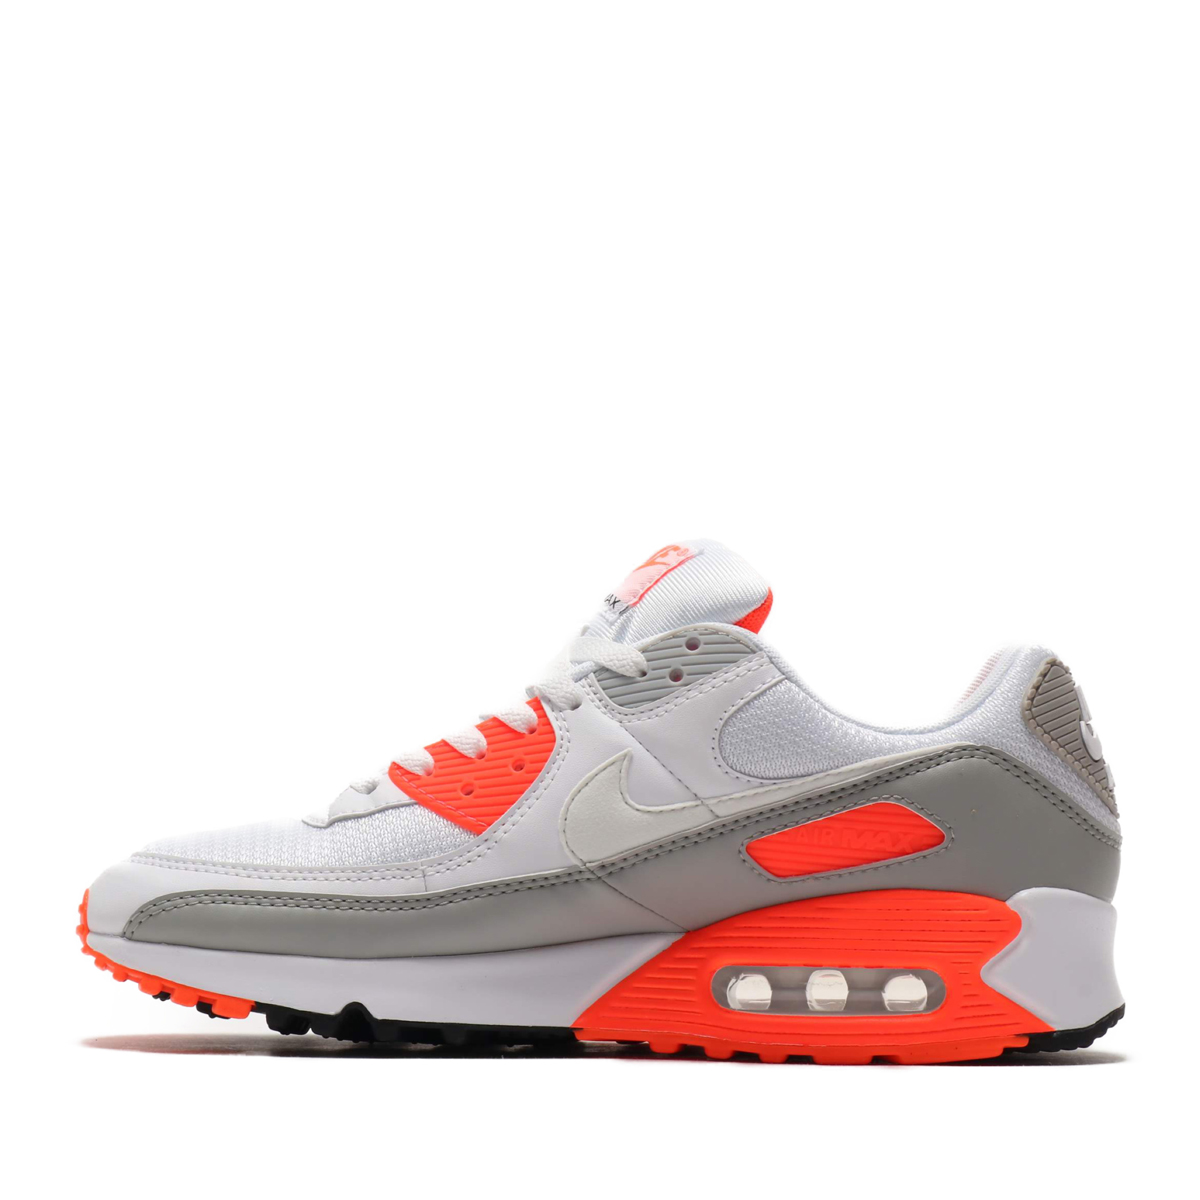 NIKE AIR MAX 90 ナイキ エア マックス 90 WHITE WHITE HYPER ORANGE LT SMOKE8nm0wOvN